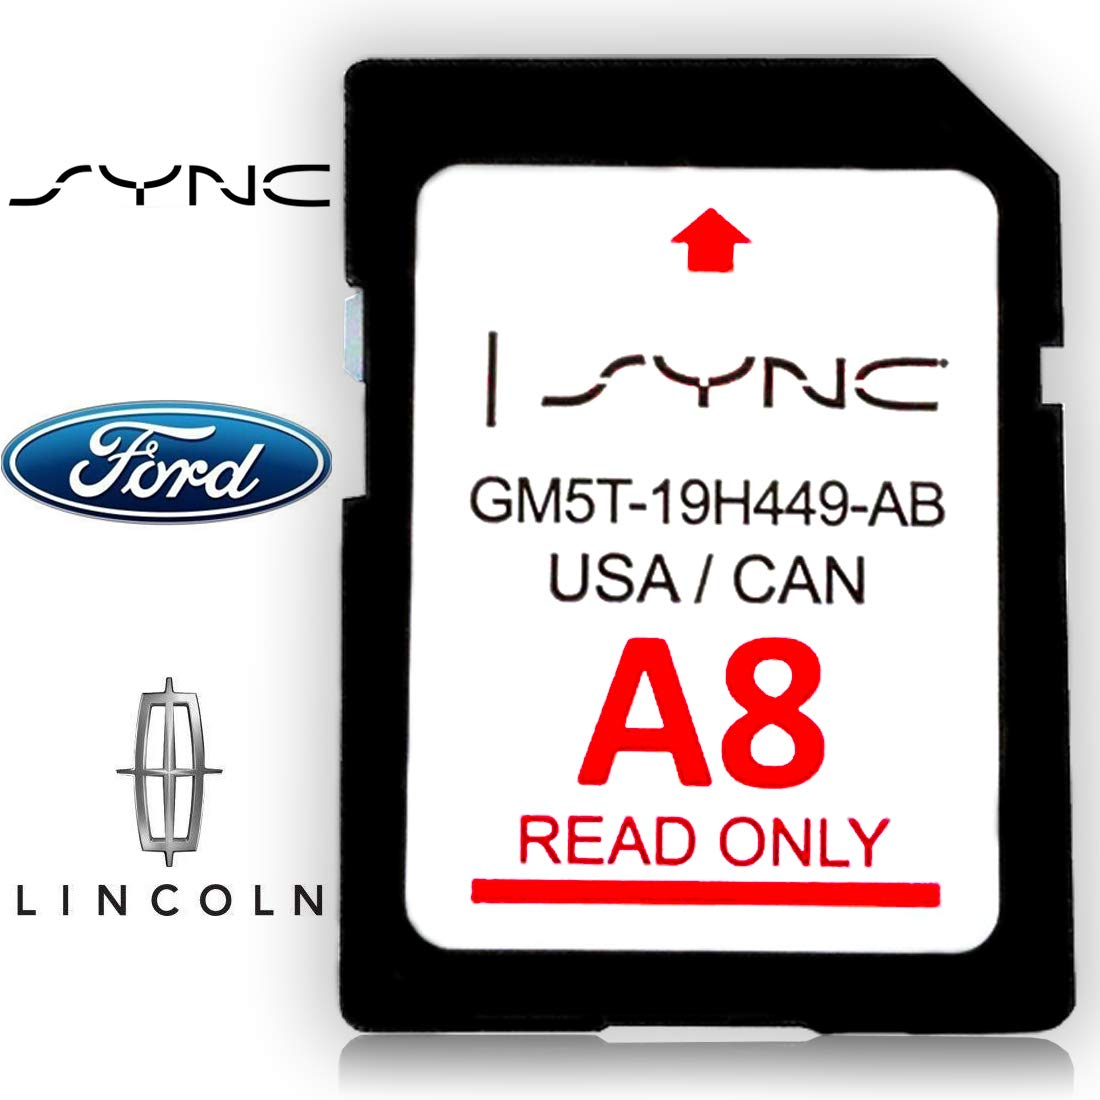 Ford & Lincoln A8 SYNC Navigation System Map Update for US & Canada NEW for 2017 LATEST SD Card for F150 Escape Explorer Flex Fusion Taurus Mustang & More GM5T-19H449-AB